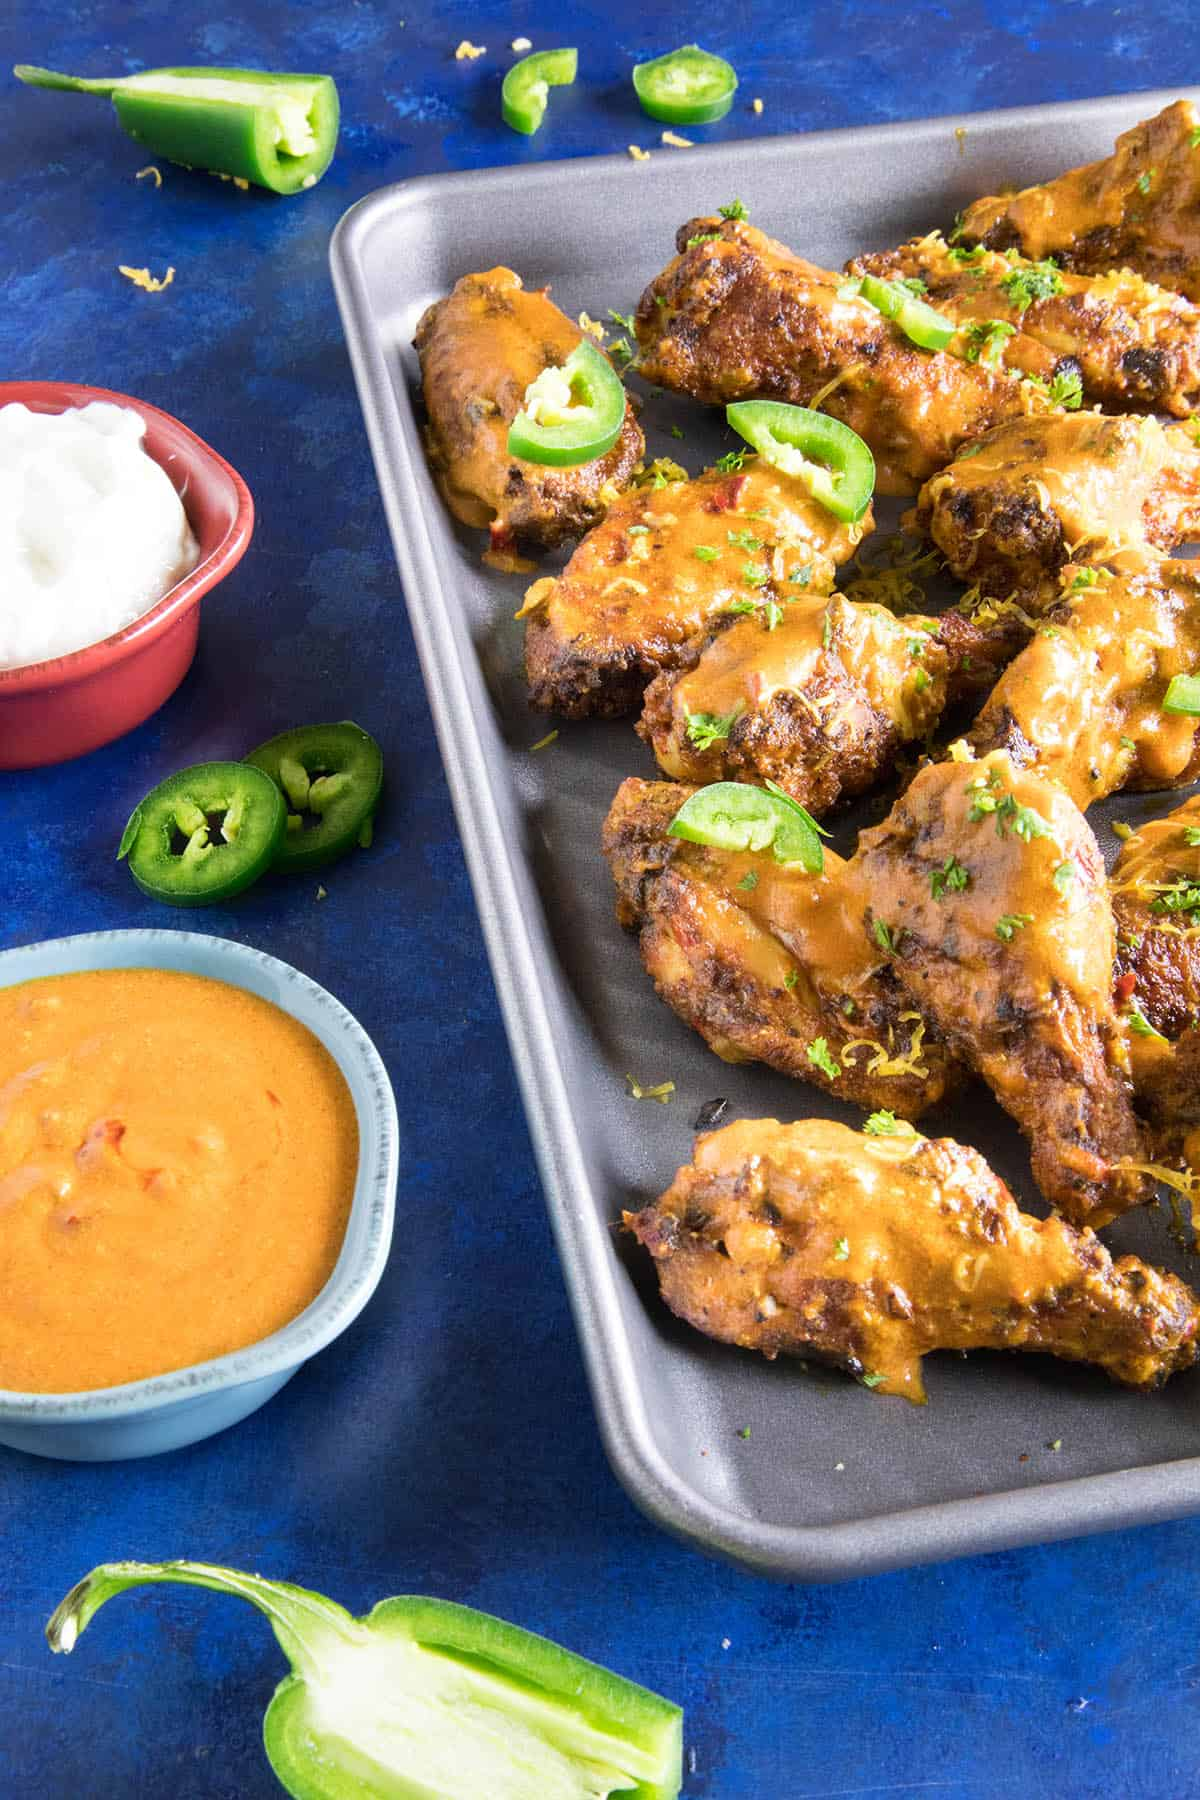 Jalapeno Cheddar Chicken Wings - Get the Recipe Below